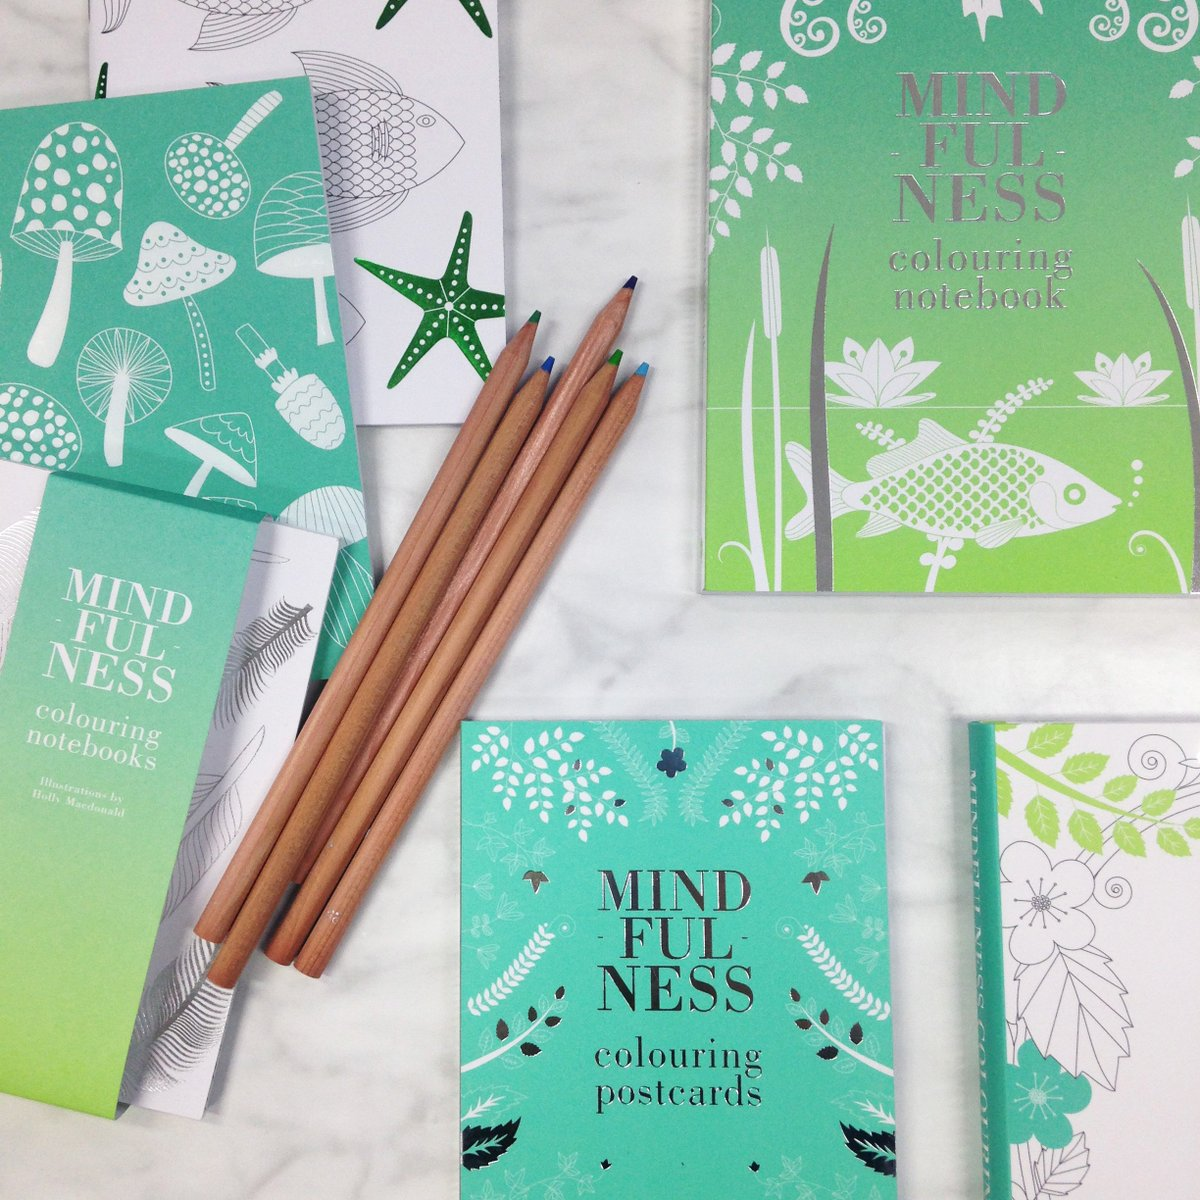 #competition To celebrate #WorldStationeryDay, we're giving away a pack of our Mindfulness Postcards! RT to enter https://t.co/cf8t4cjbqT